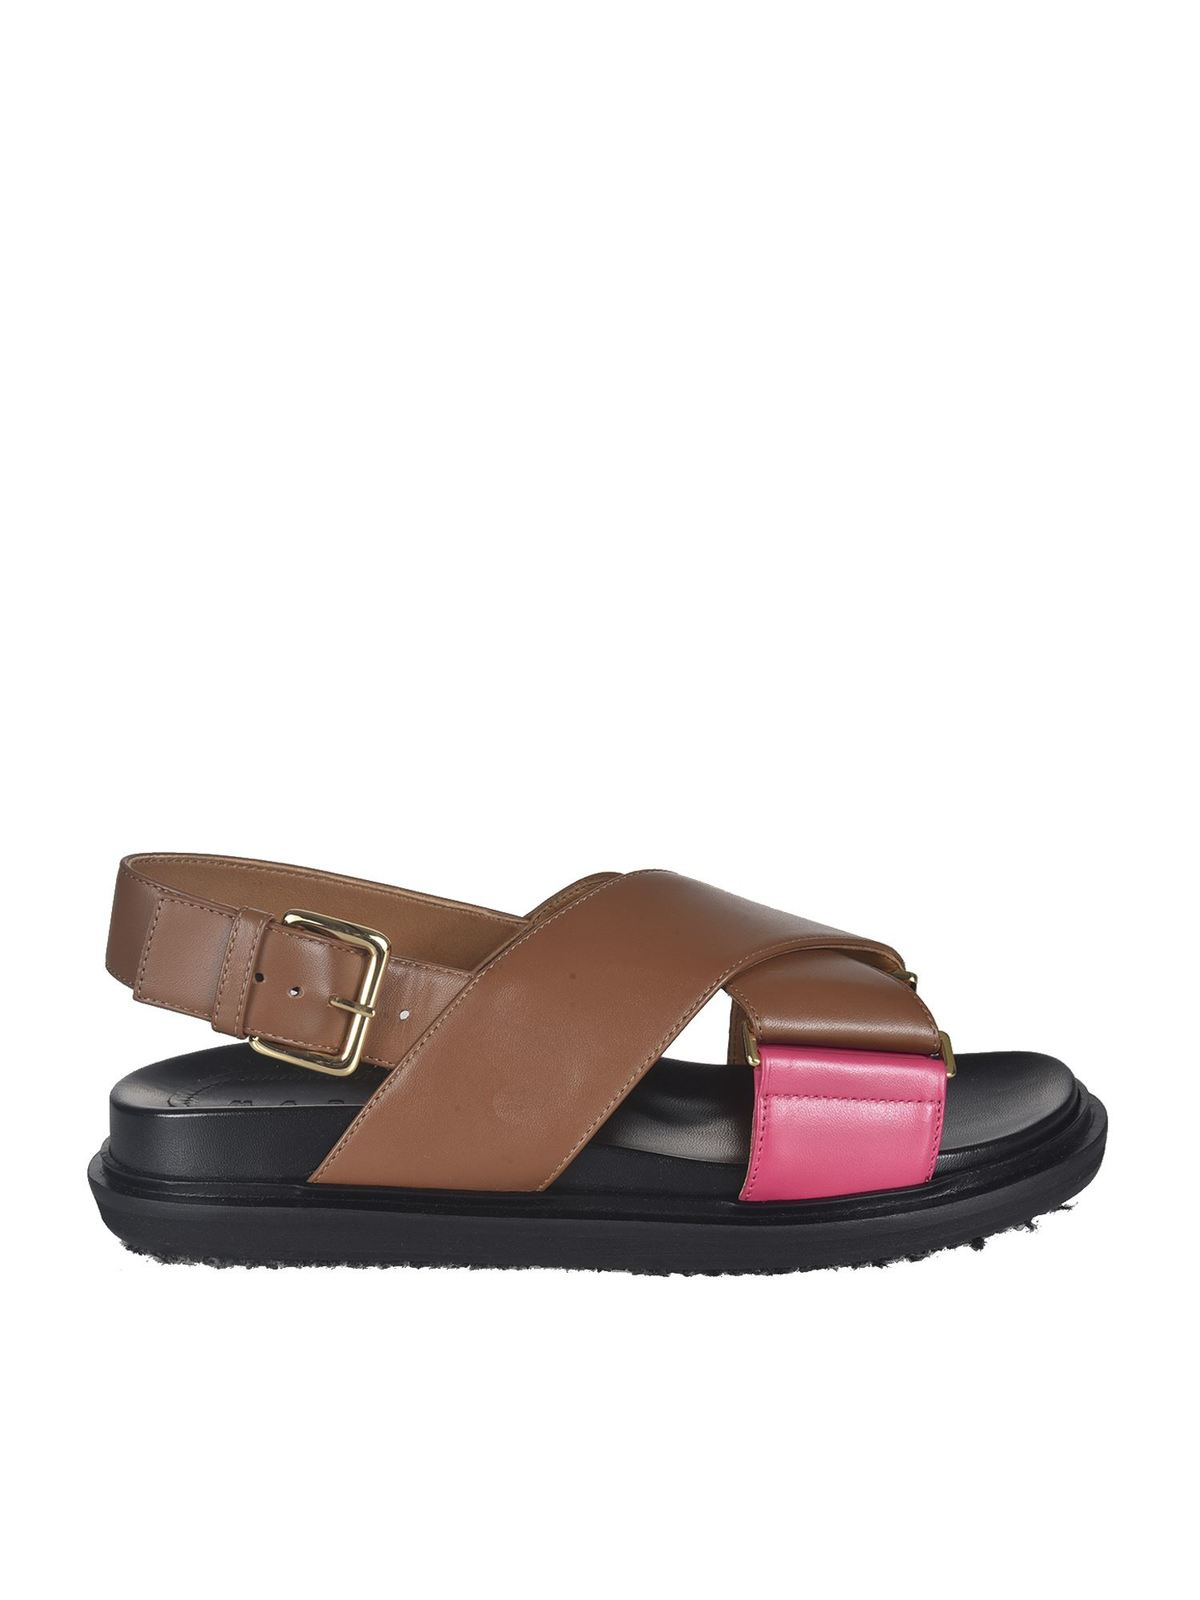 MARNI CROSS SANDALS IN BROWN AND PINK